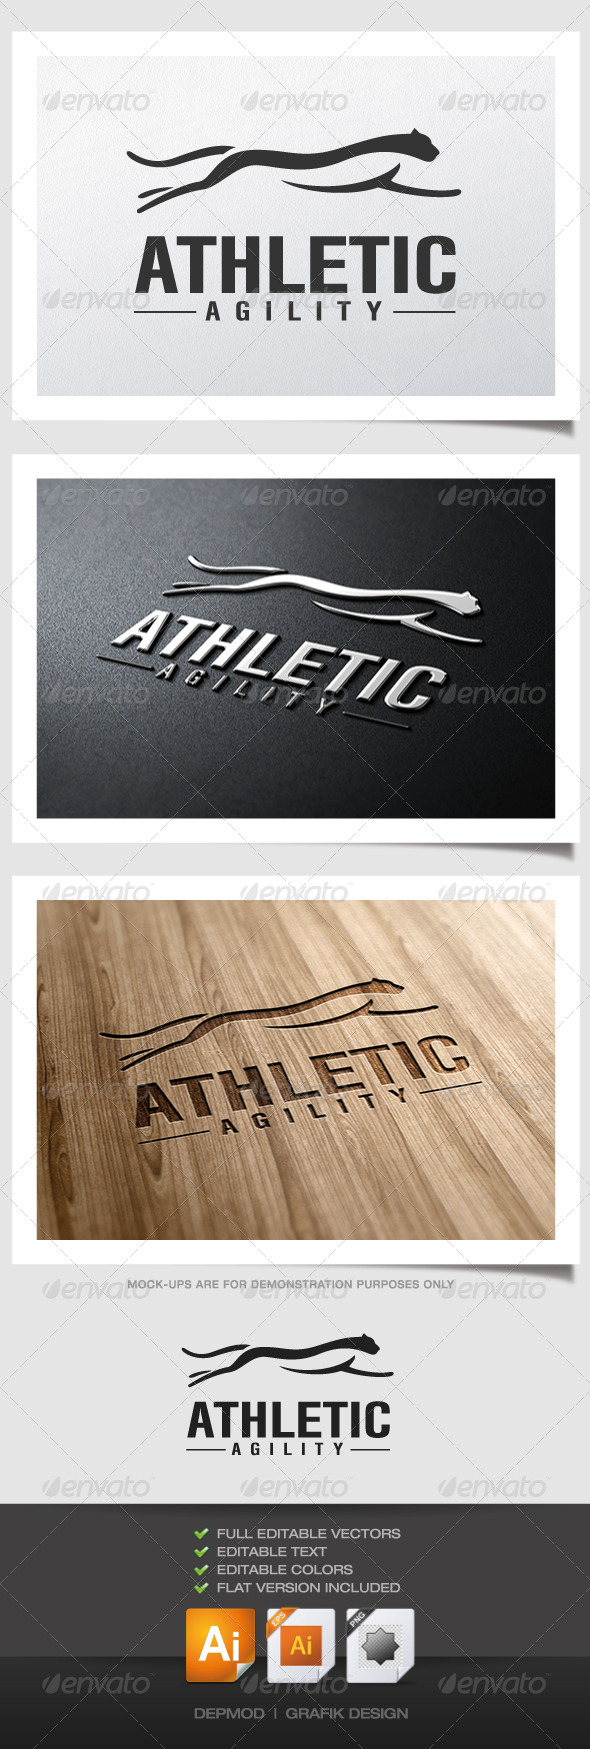 GraphicRiver Athletic Agility Logo 5001966